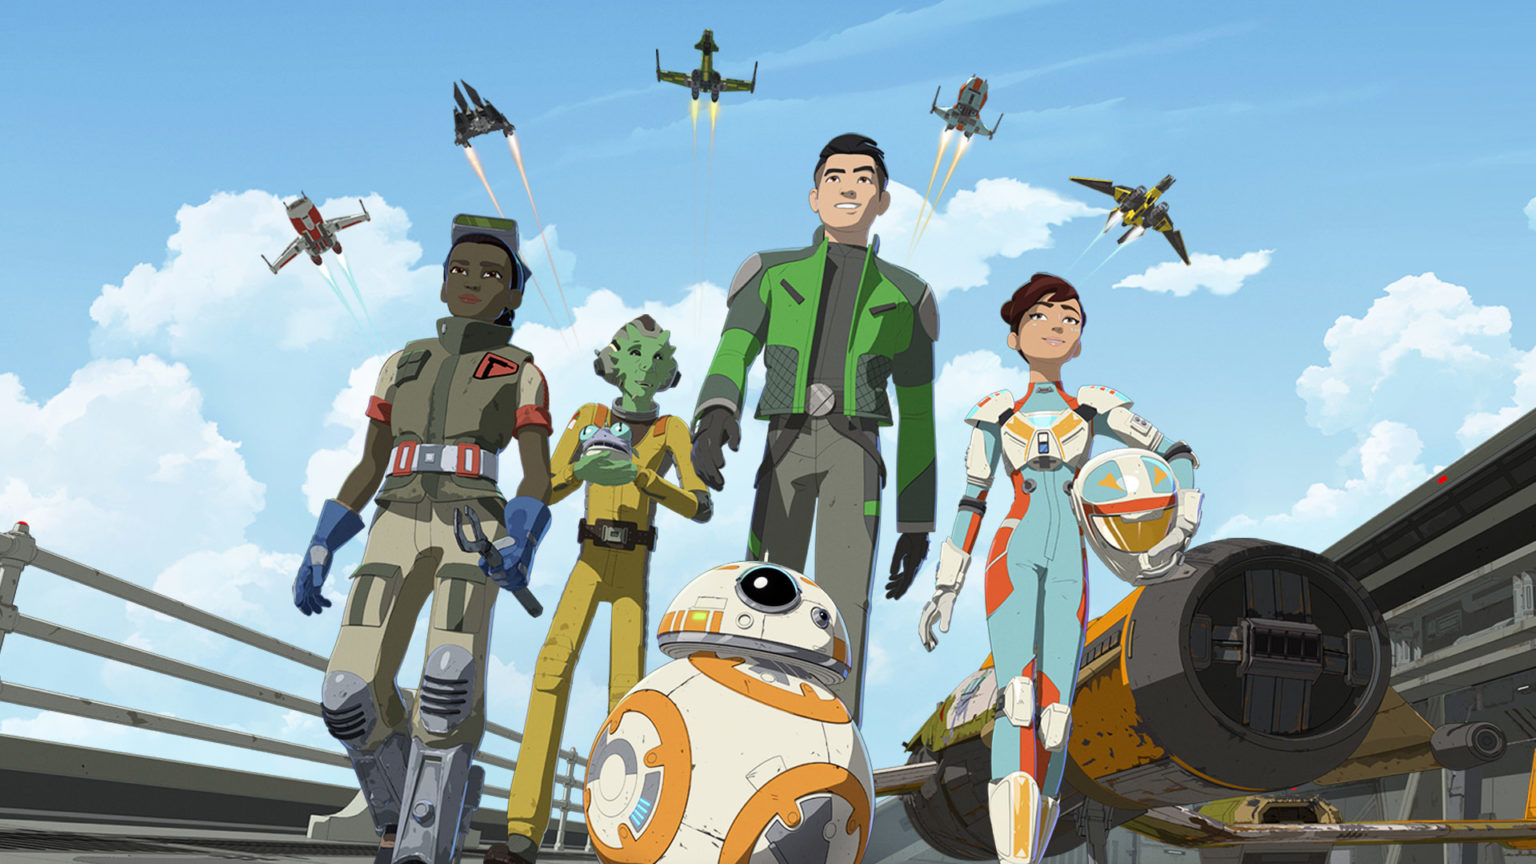 Team fireball in Star Wars Resistance.